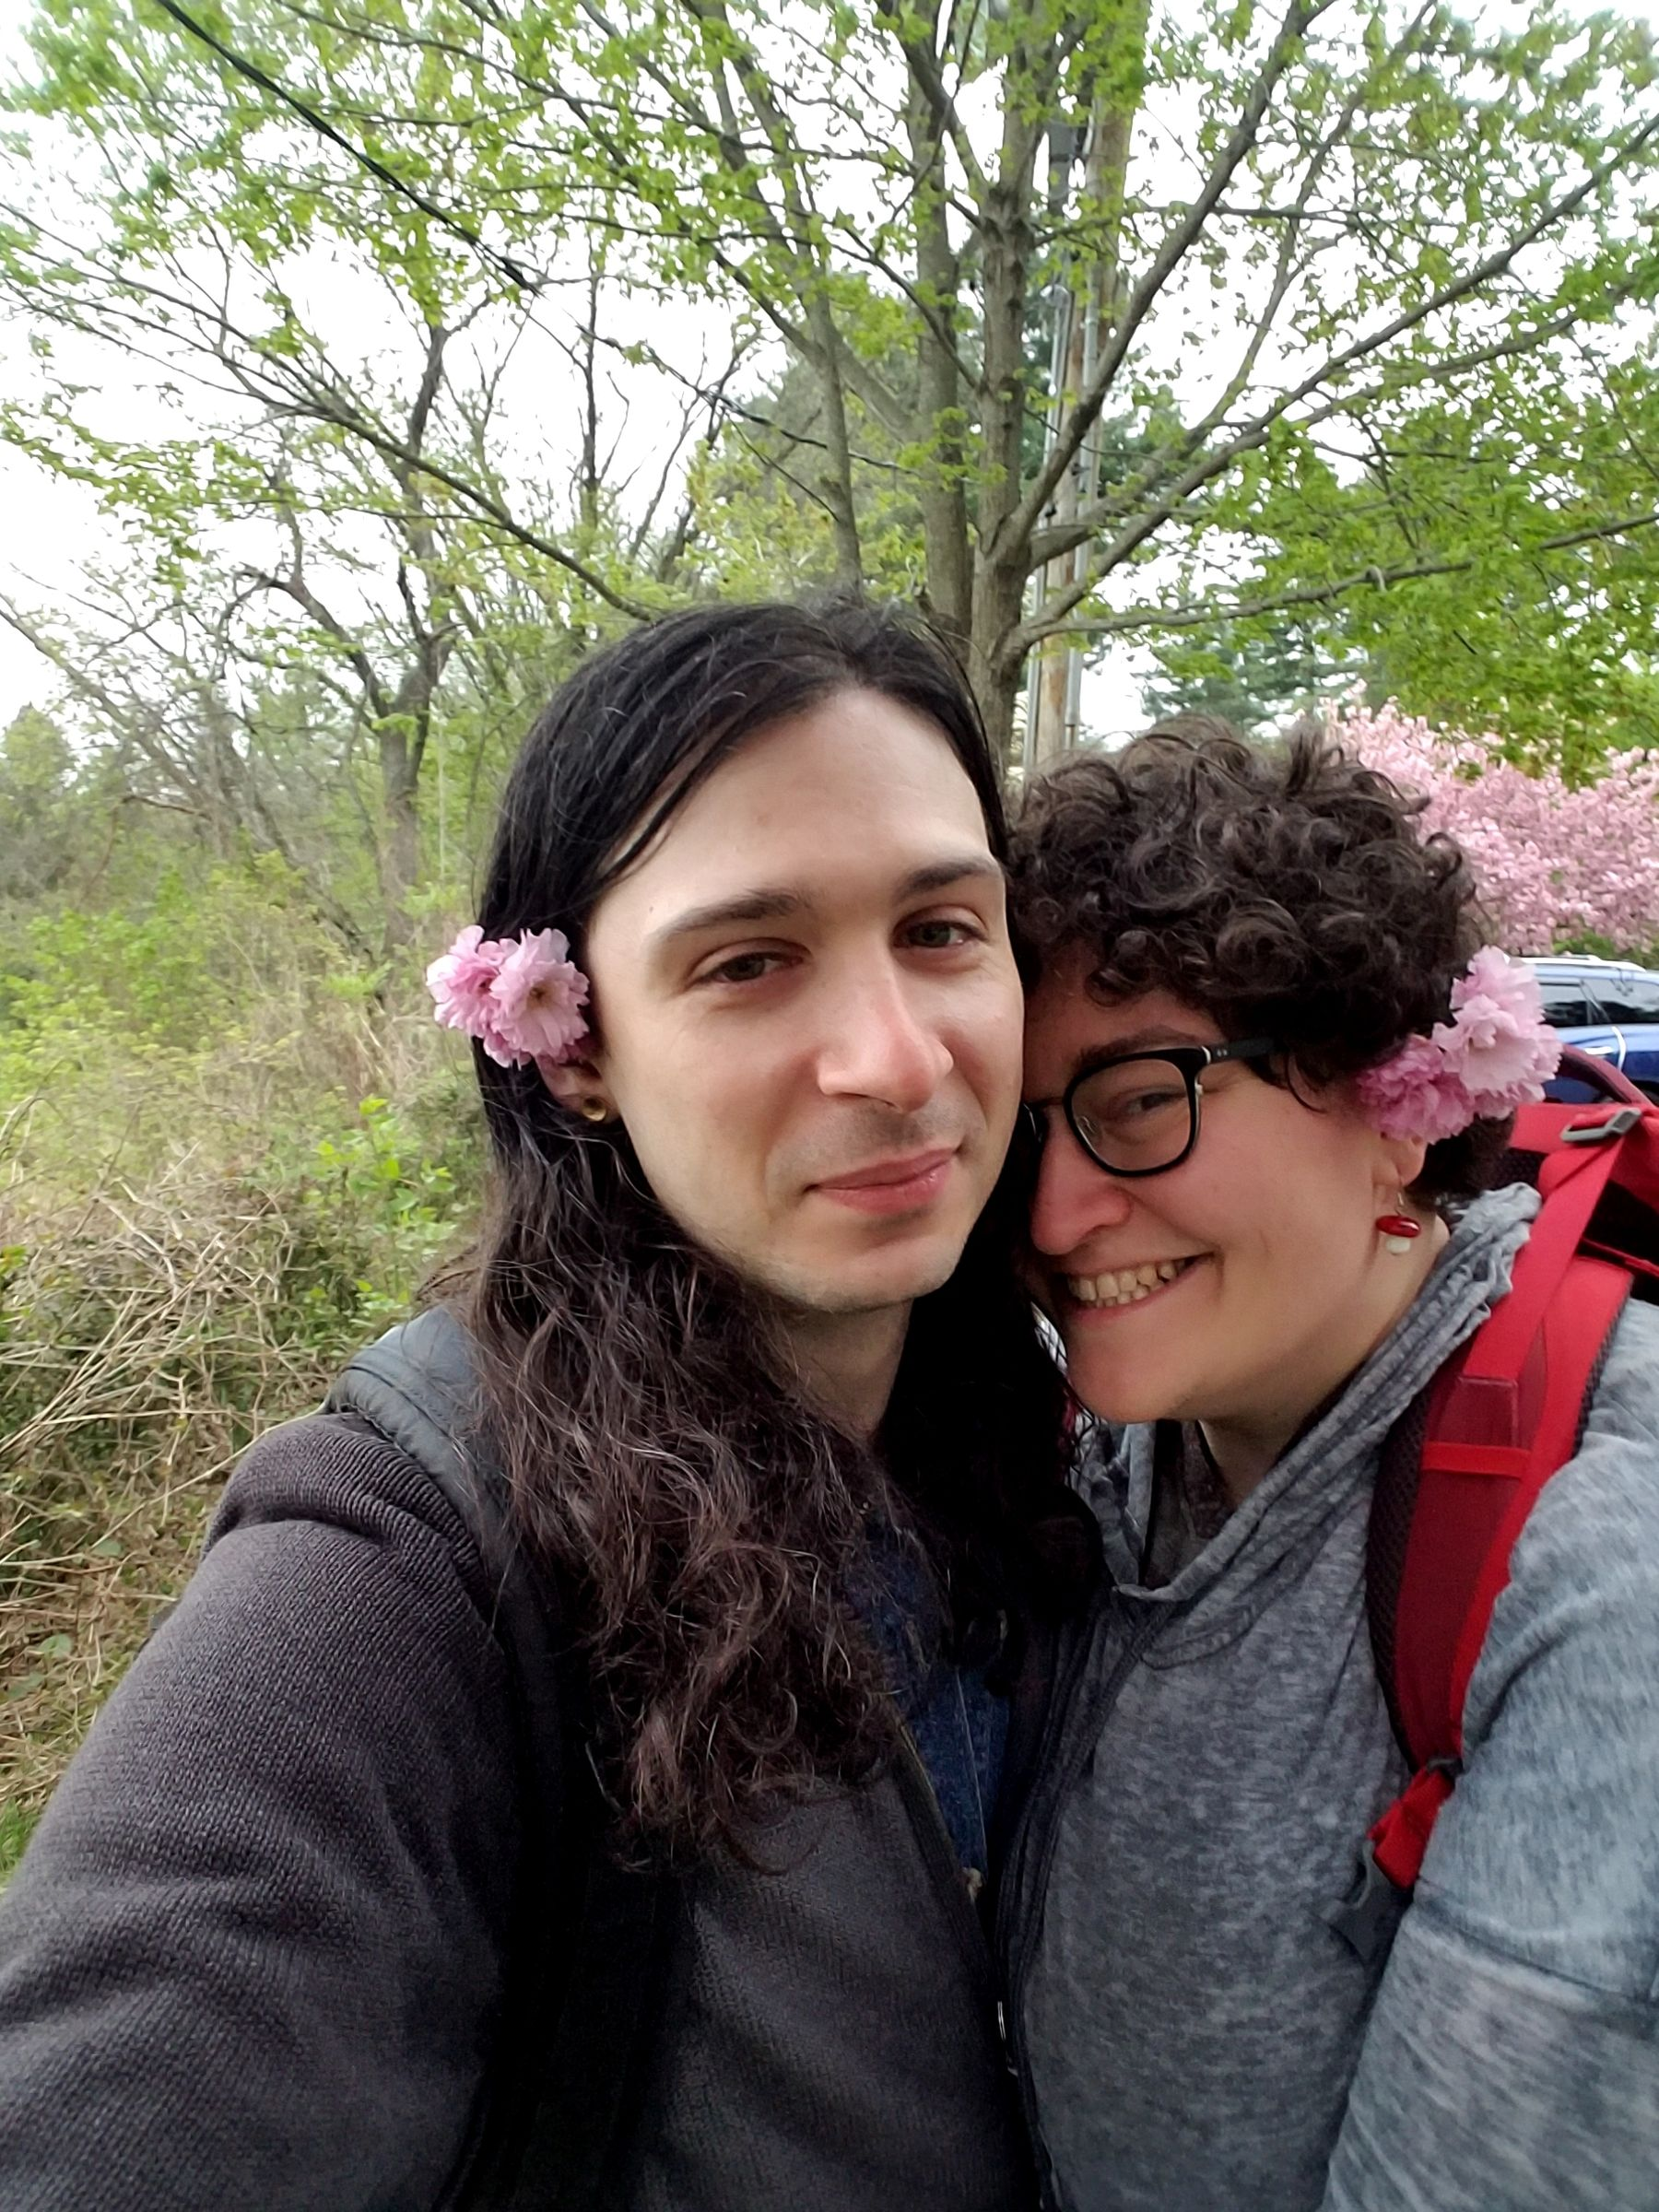 A selfie of two people in front of a tree. They are smiling into the camera, and each have pink flowers in their hair.